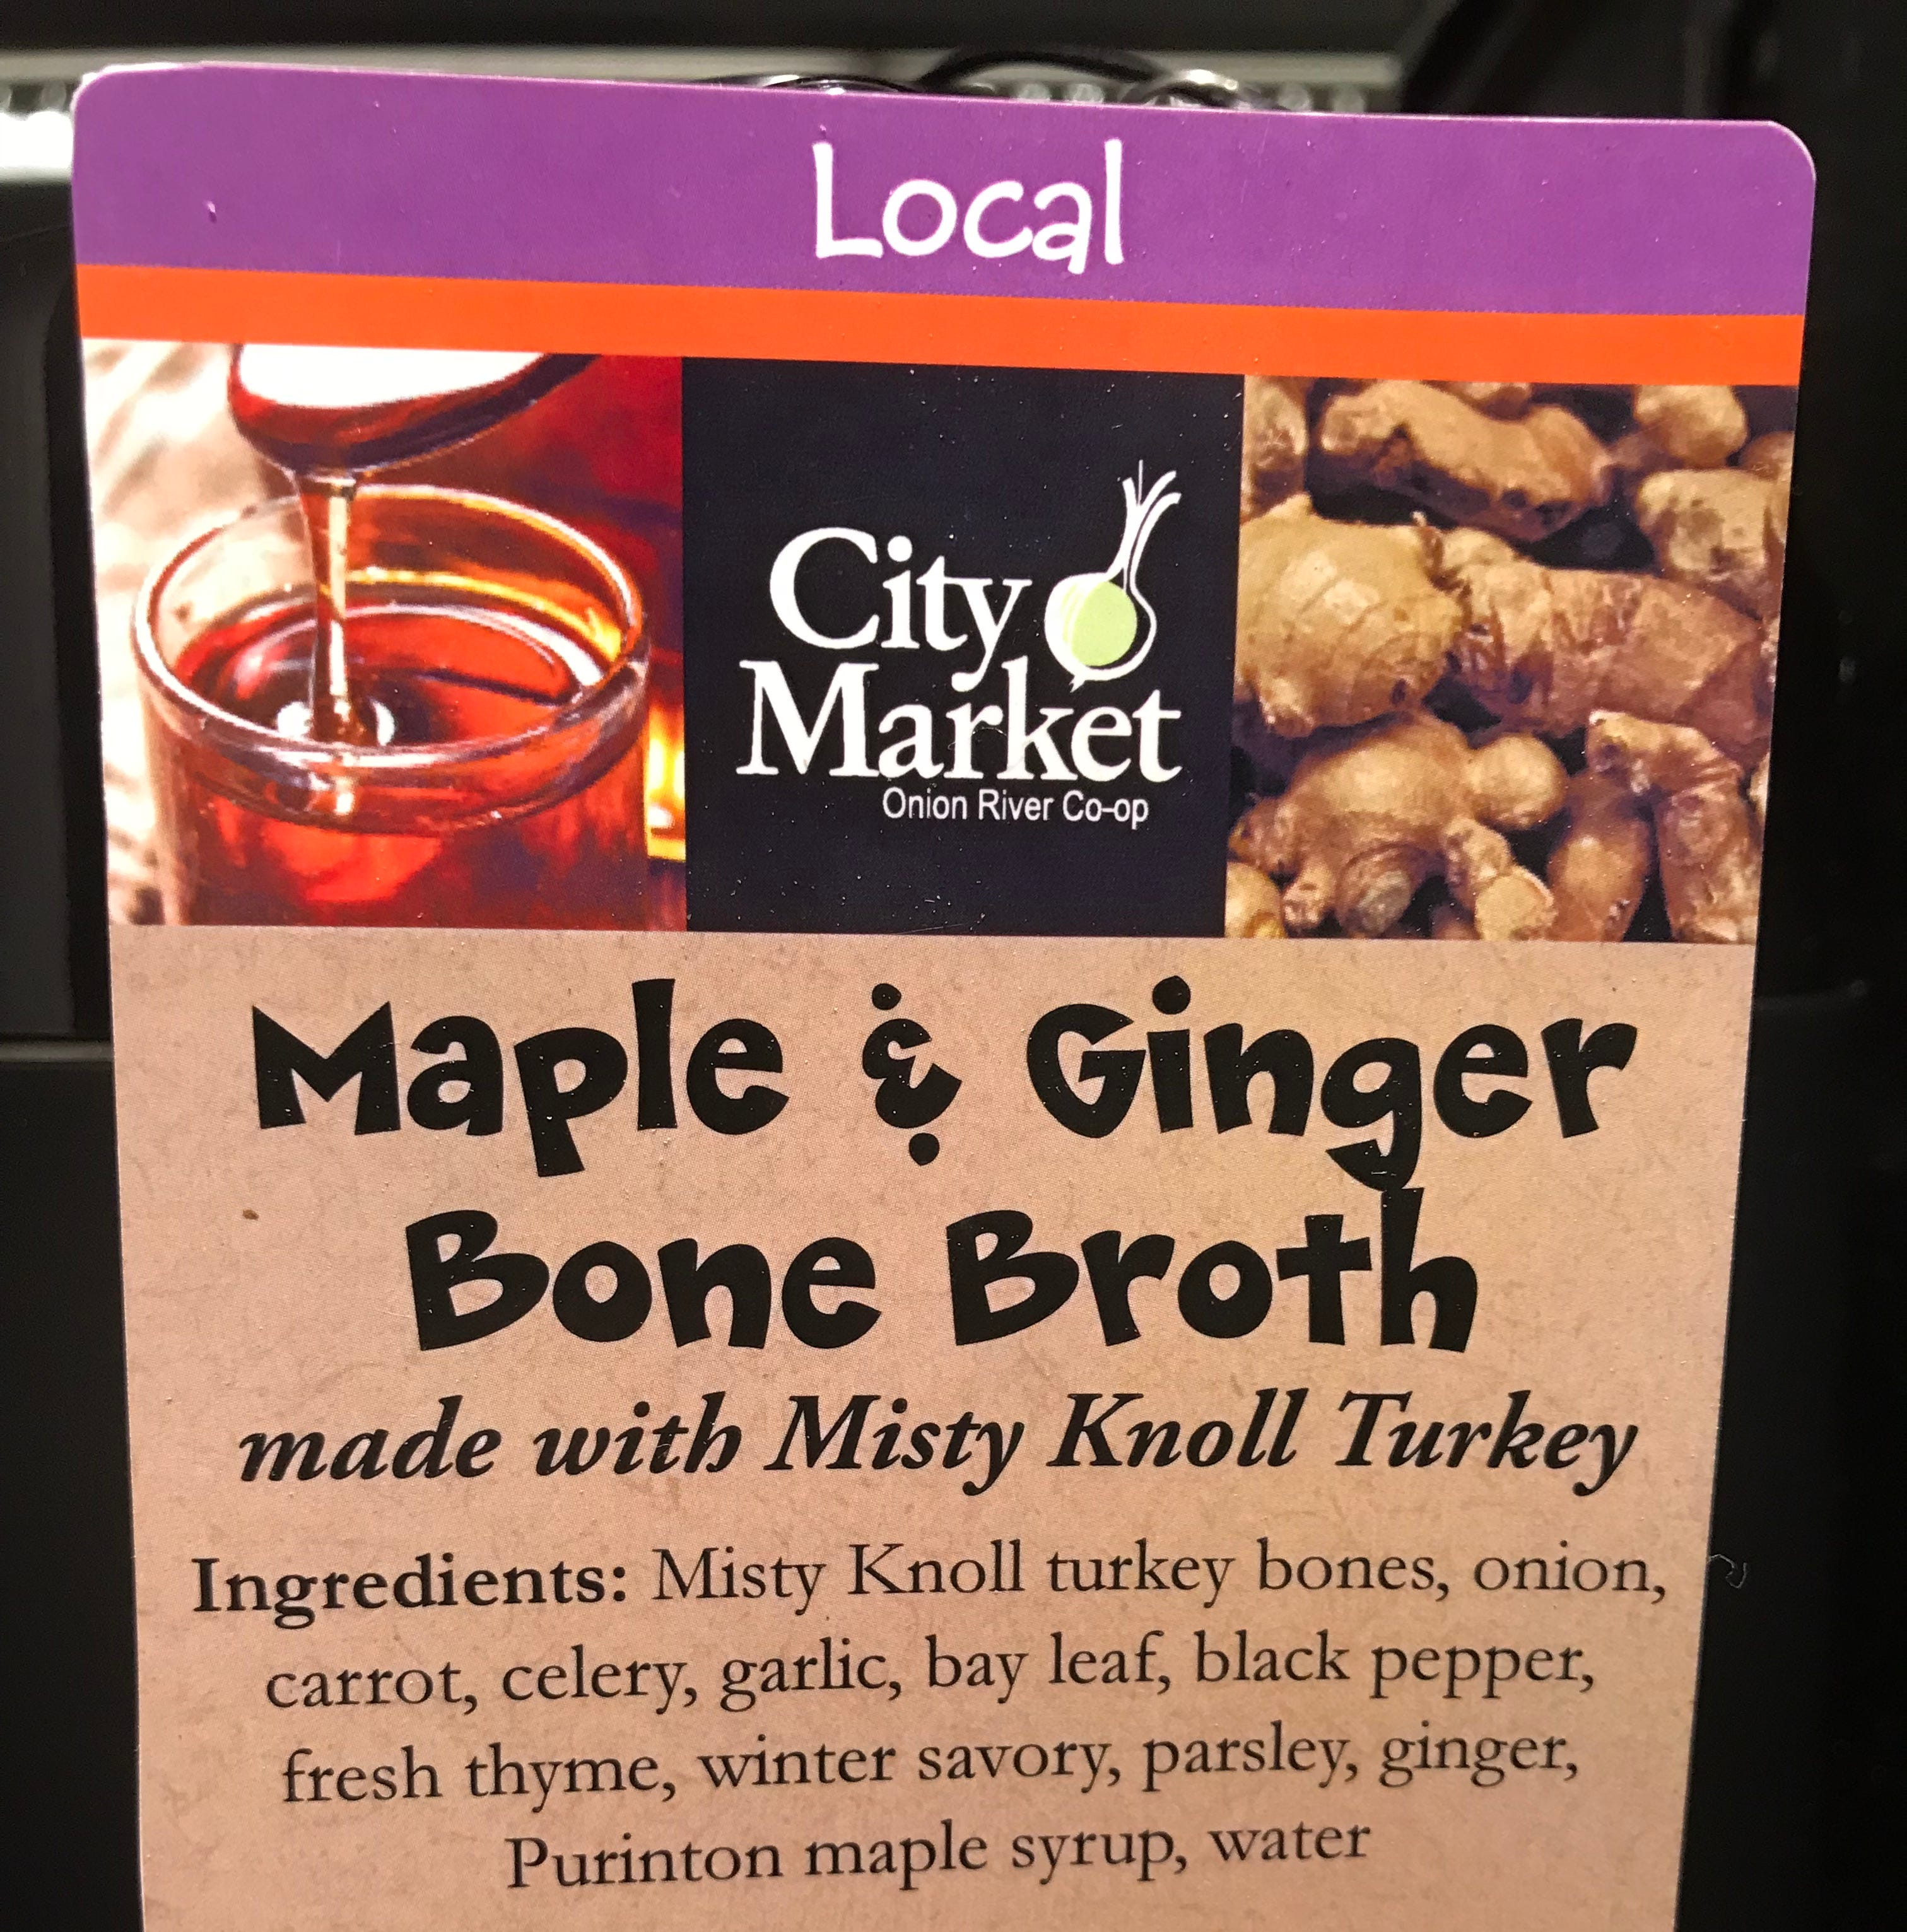 Best part of waking up is bone broth in your cup? City Market lets you decide